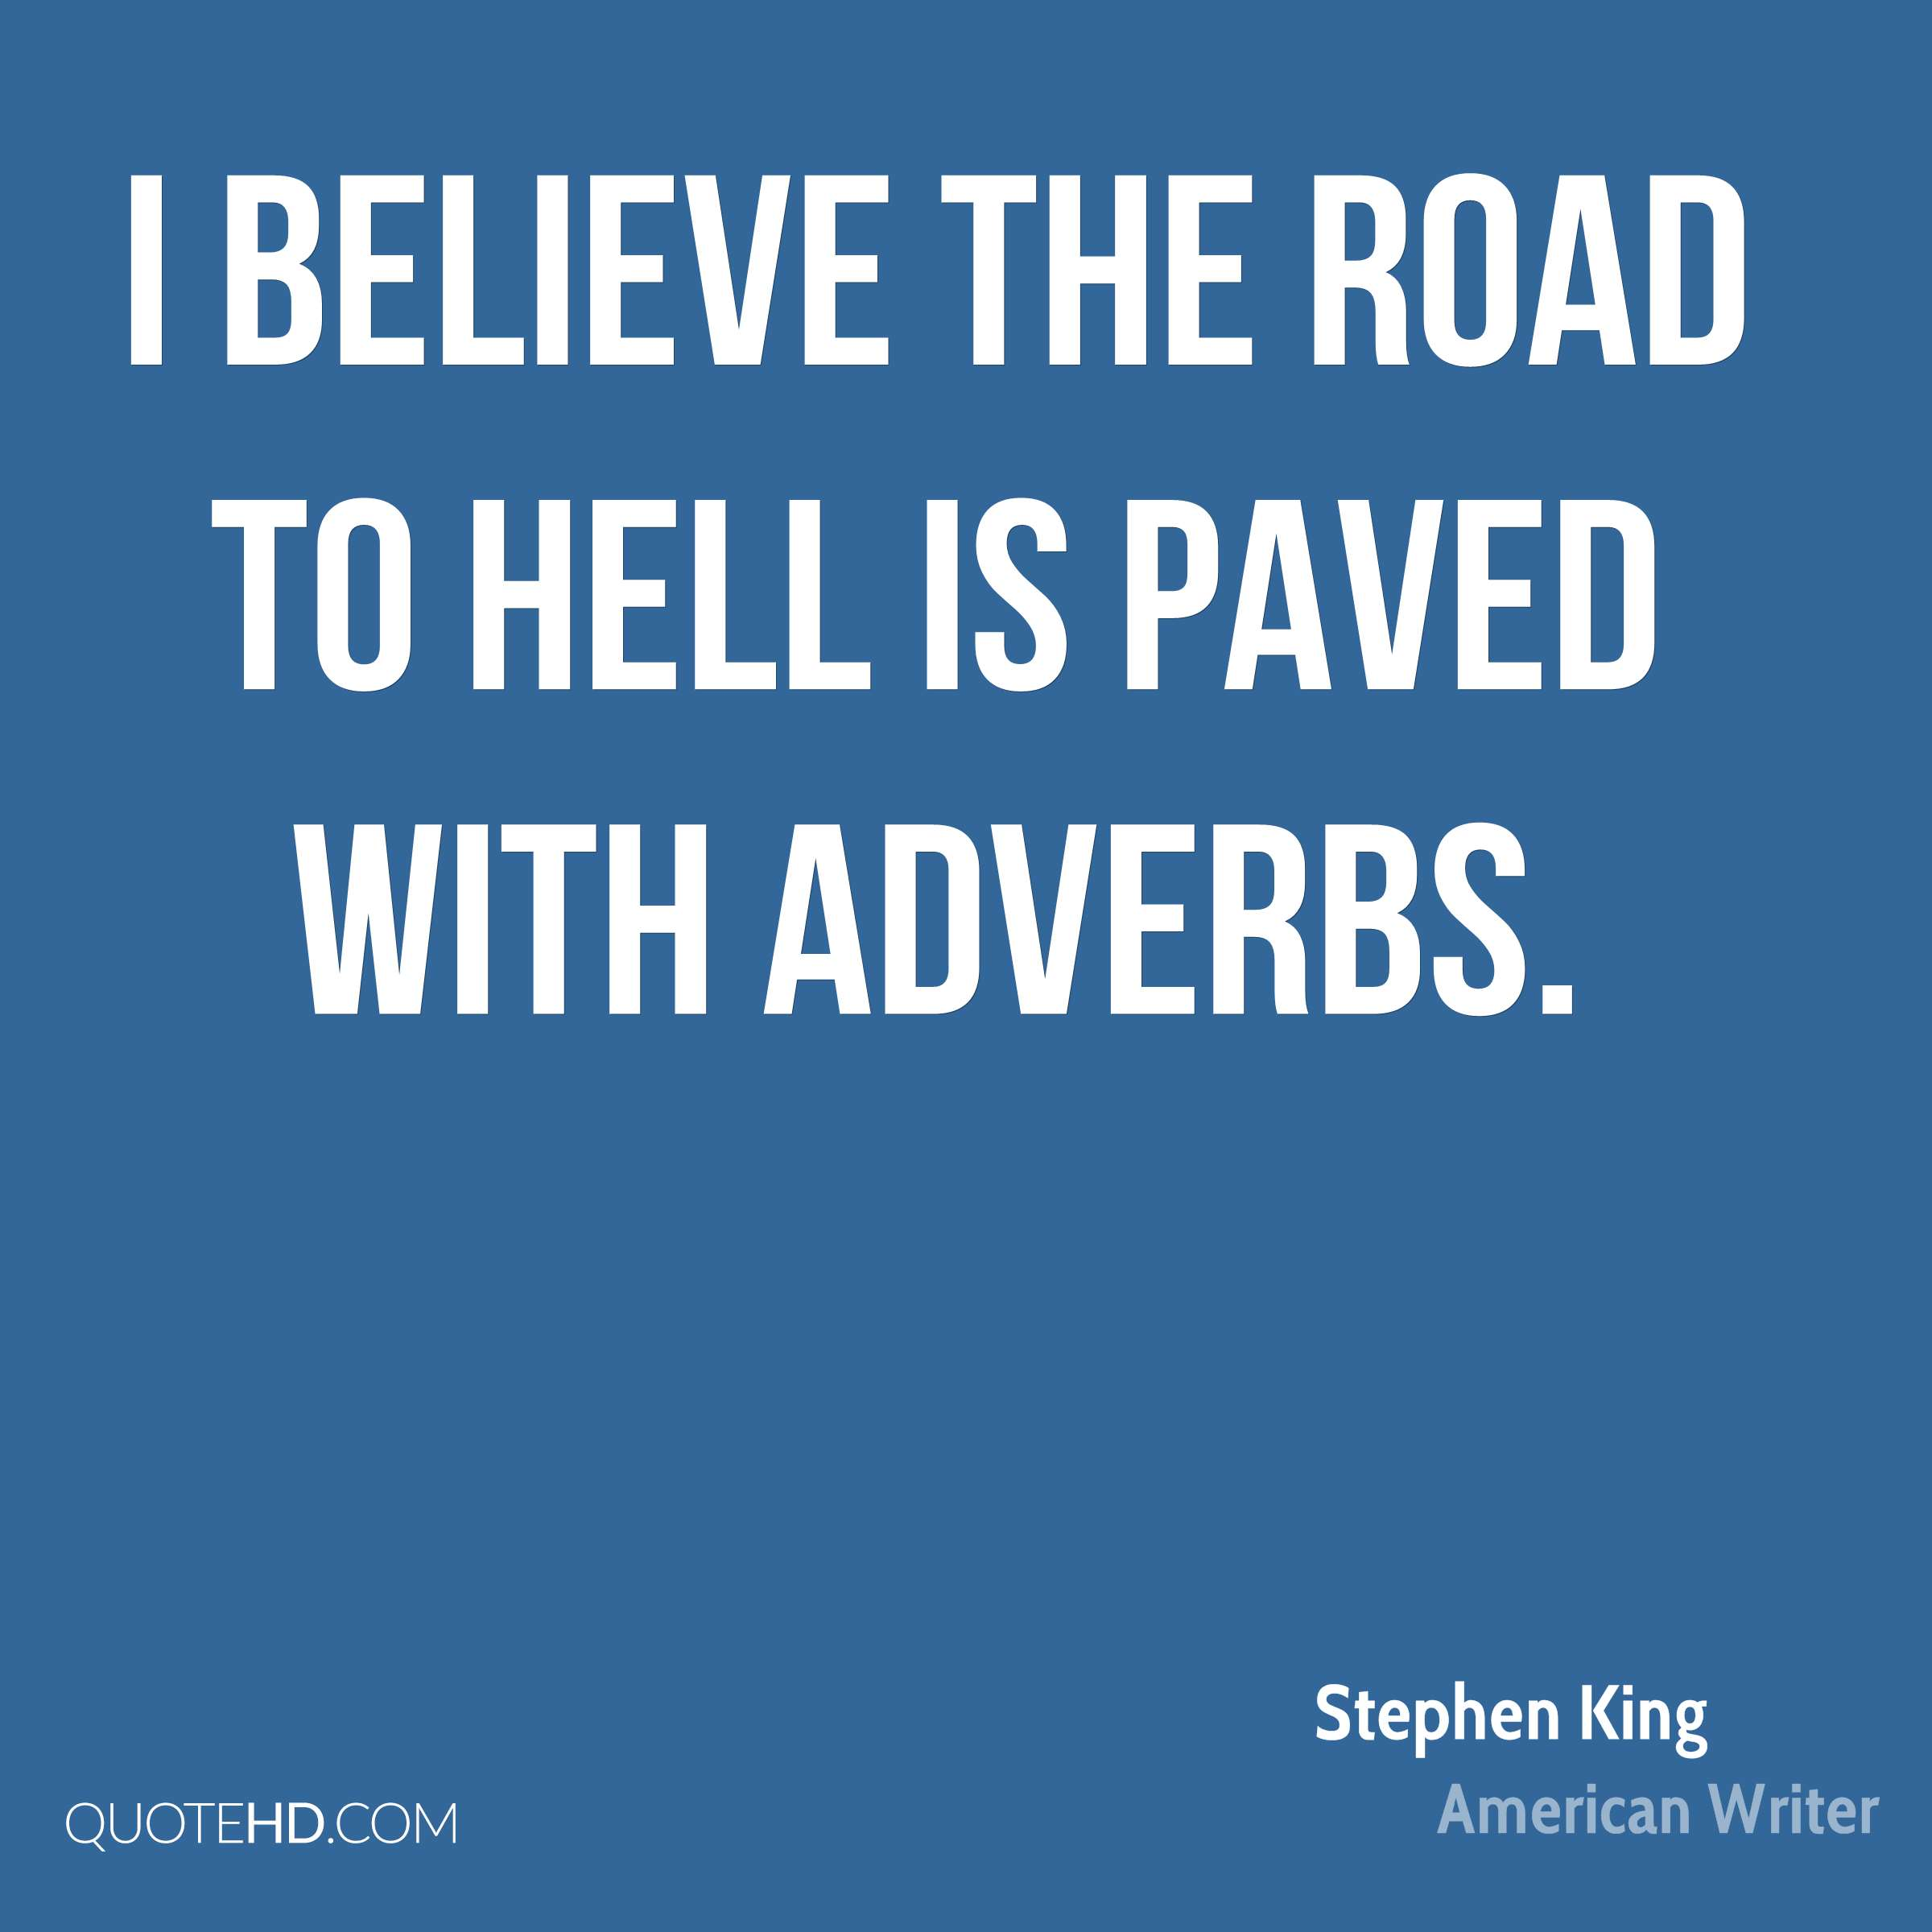 I believe the road to hell is paved with adverbs.